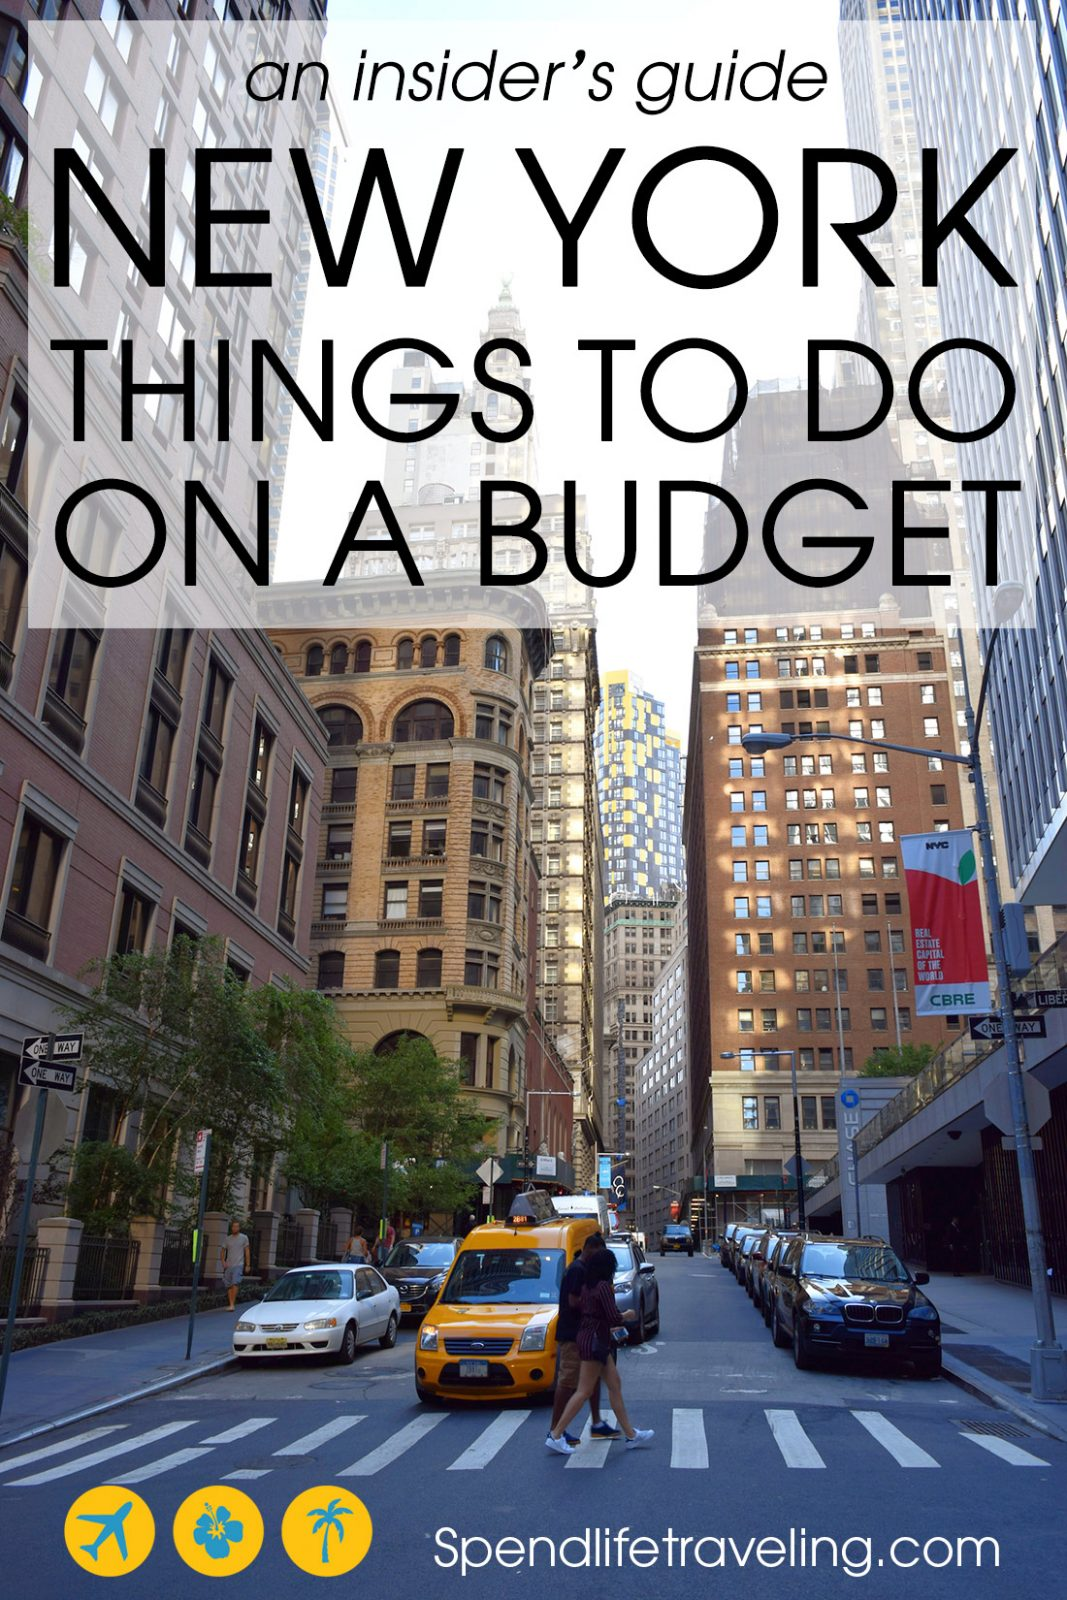 Things to do on a budget in New York City - An insider's guide to what to see & do in NYC